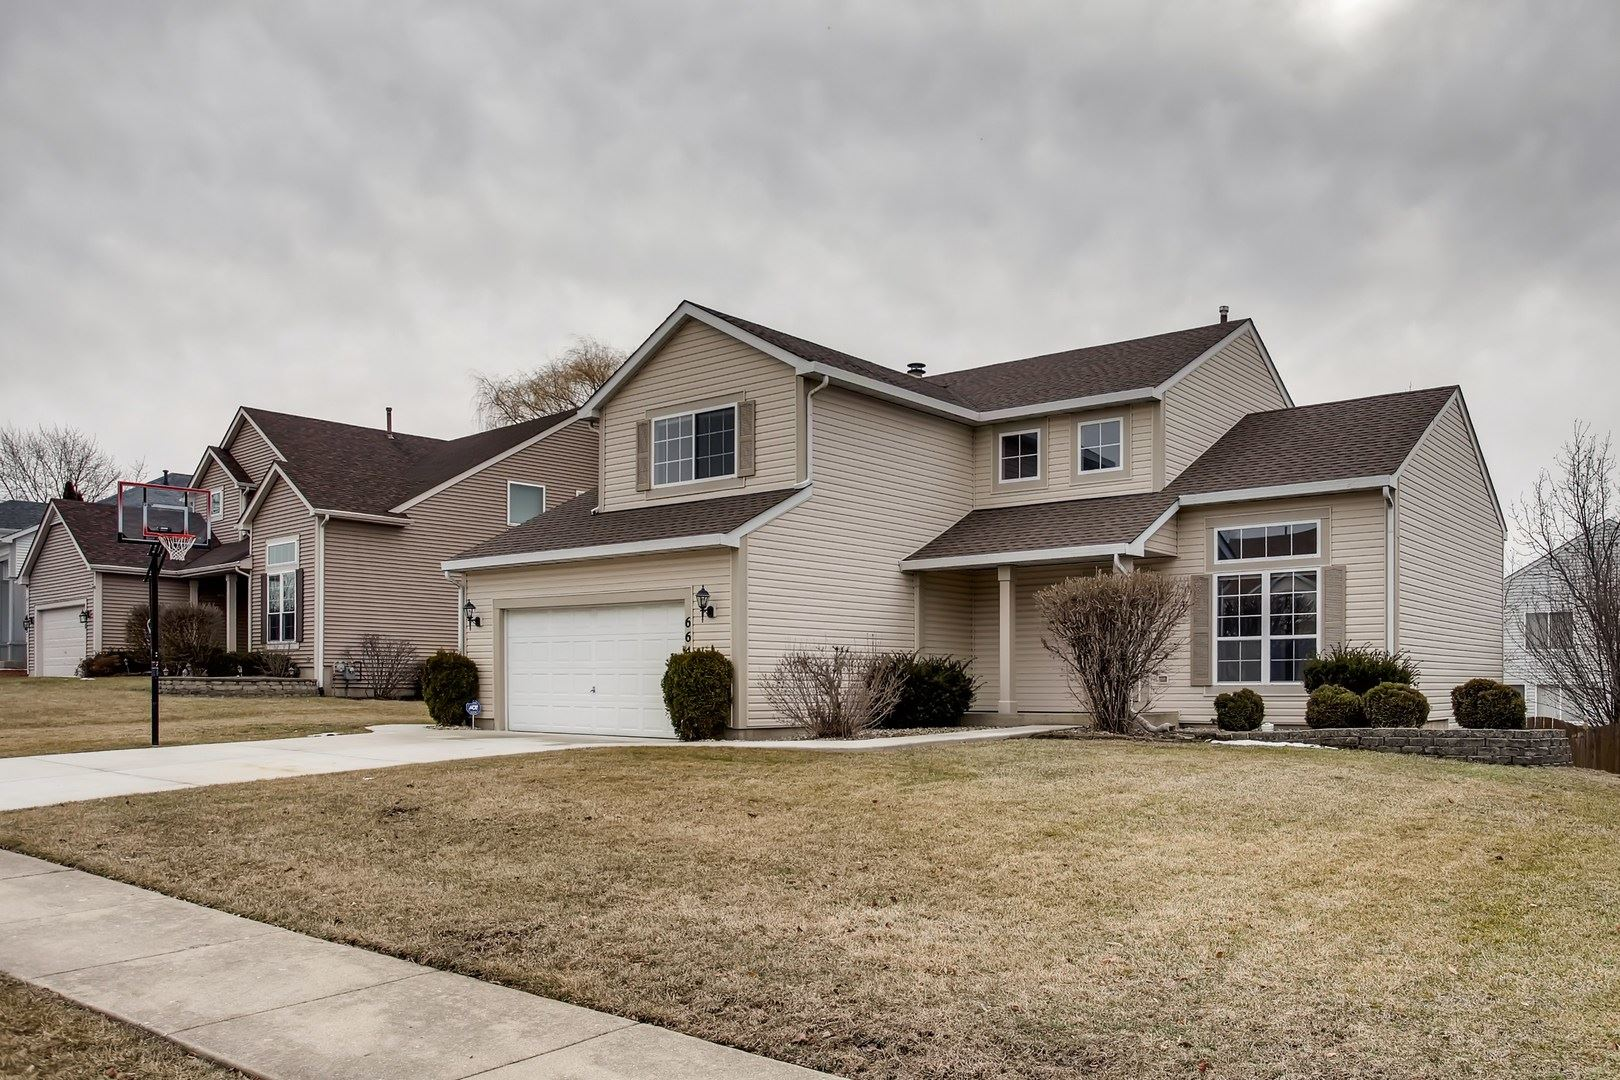 664 Willow Drive, Carol Stream, IL 60188 - #: 10650638